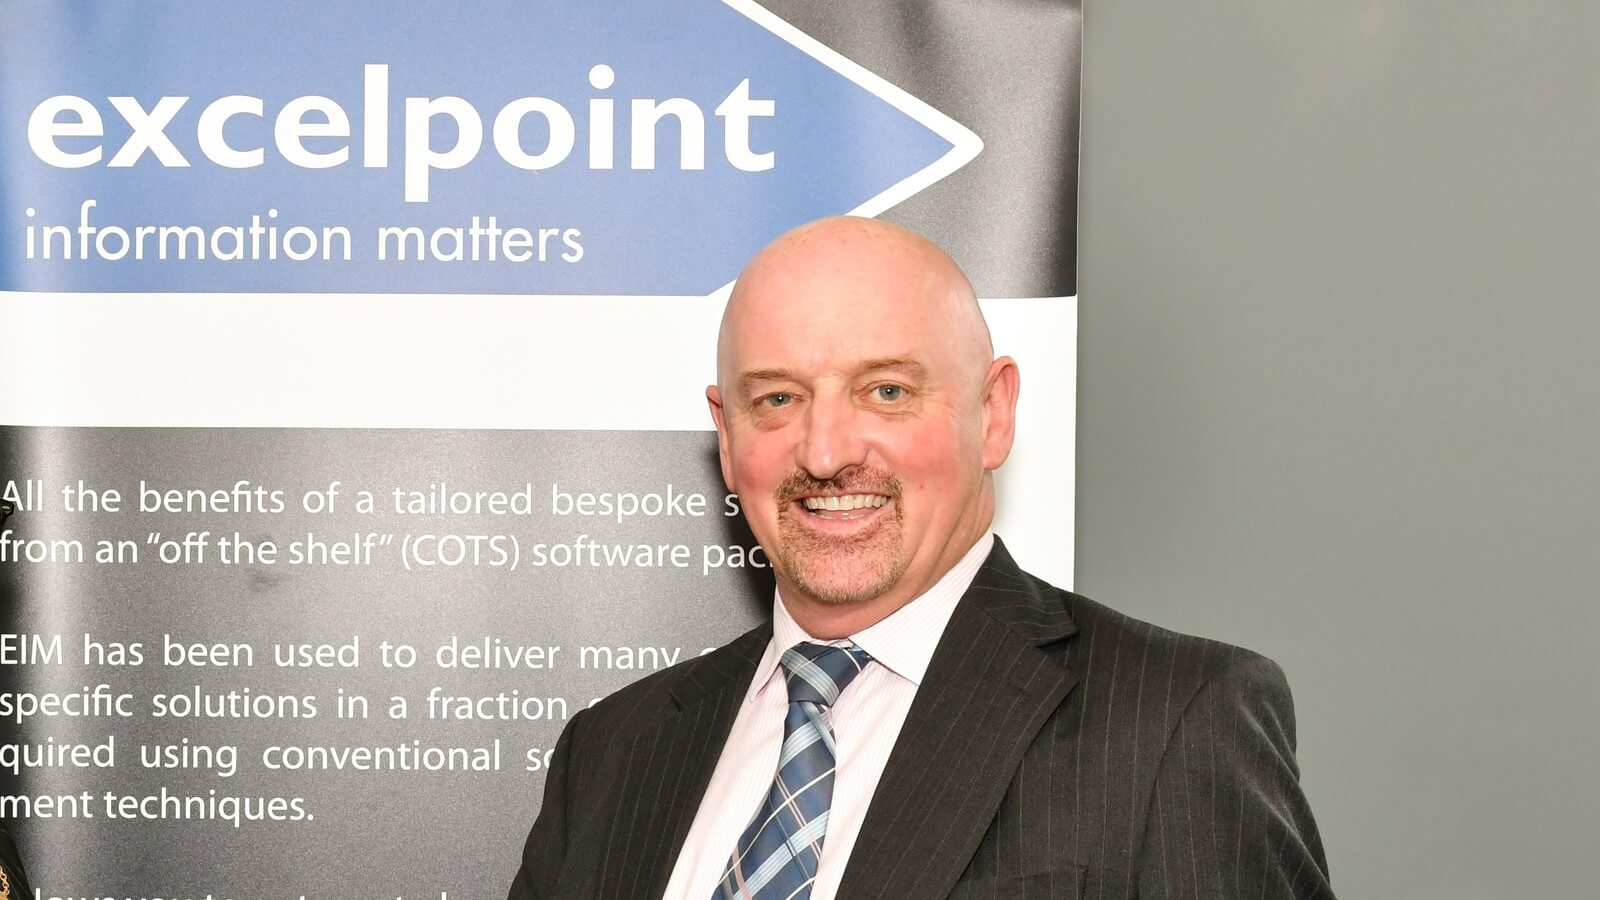 Ian Brown Is Bursting To Tell His Excelpoint Secret